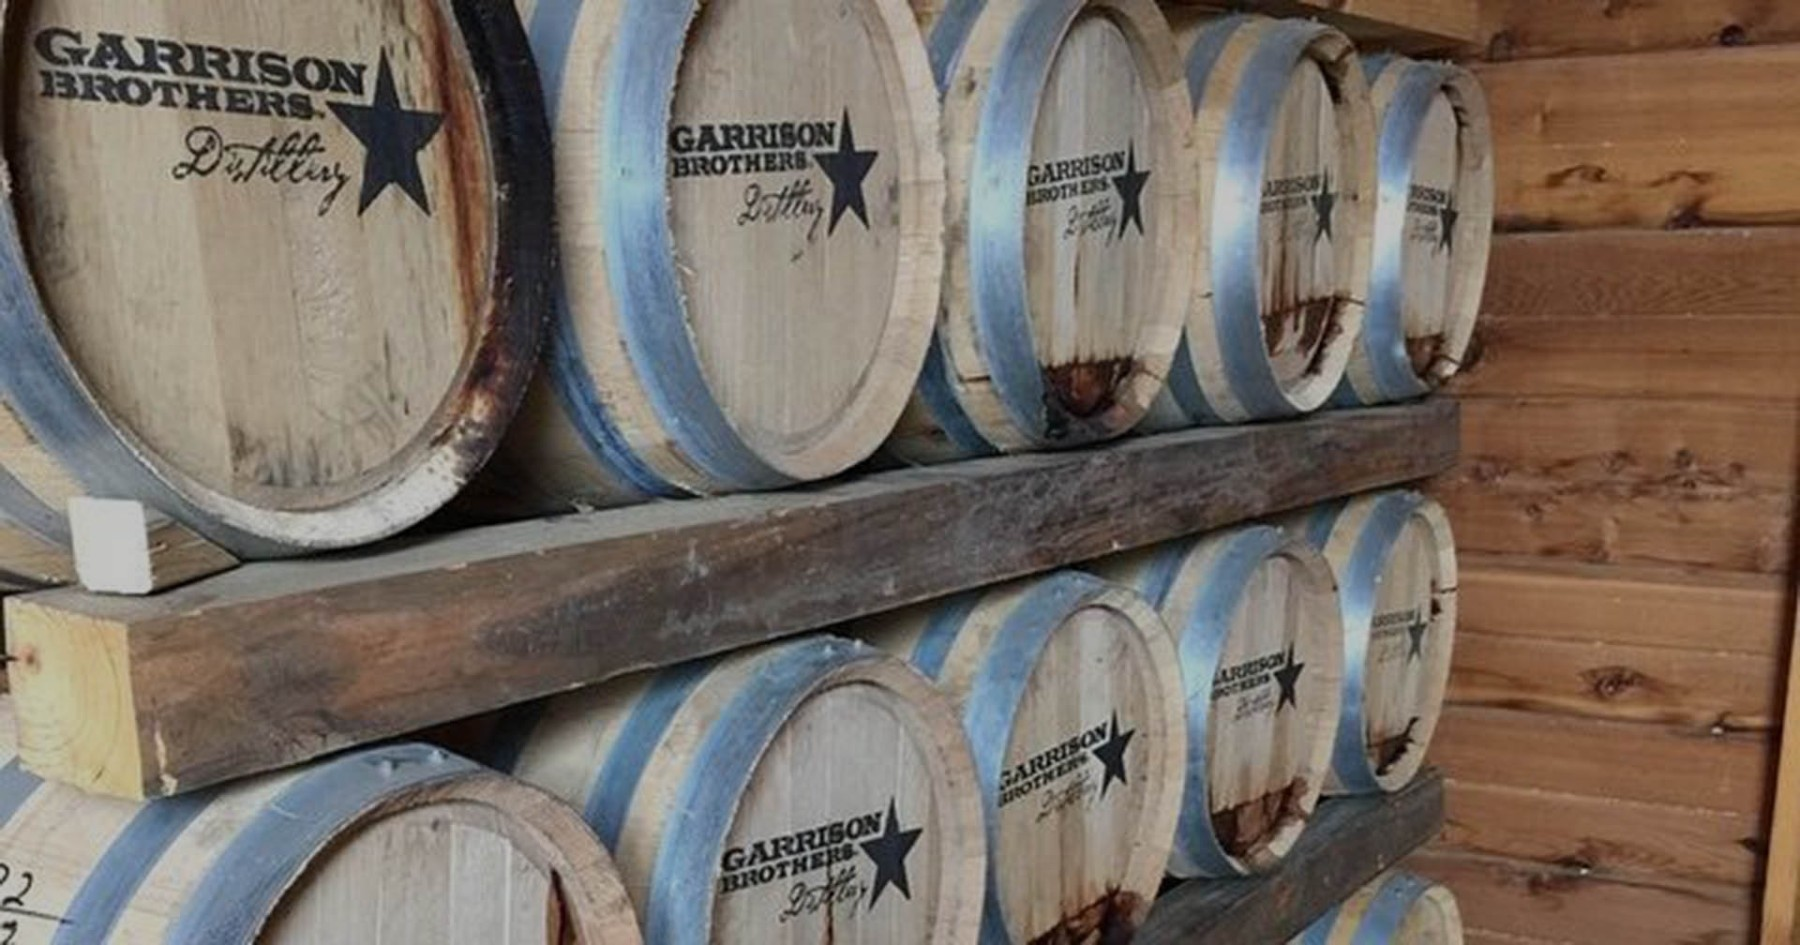 Texas's First Bourbon Distillery to Sell by the Barrel, Unsurprisingly